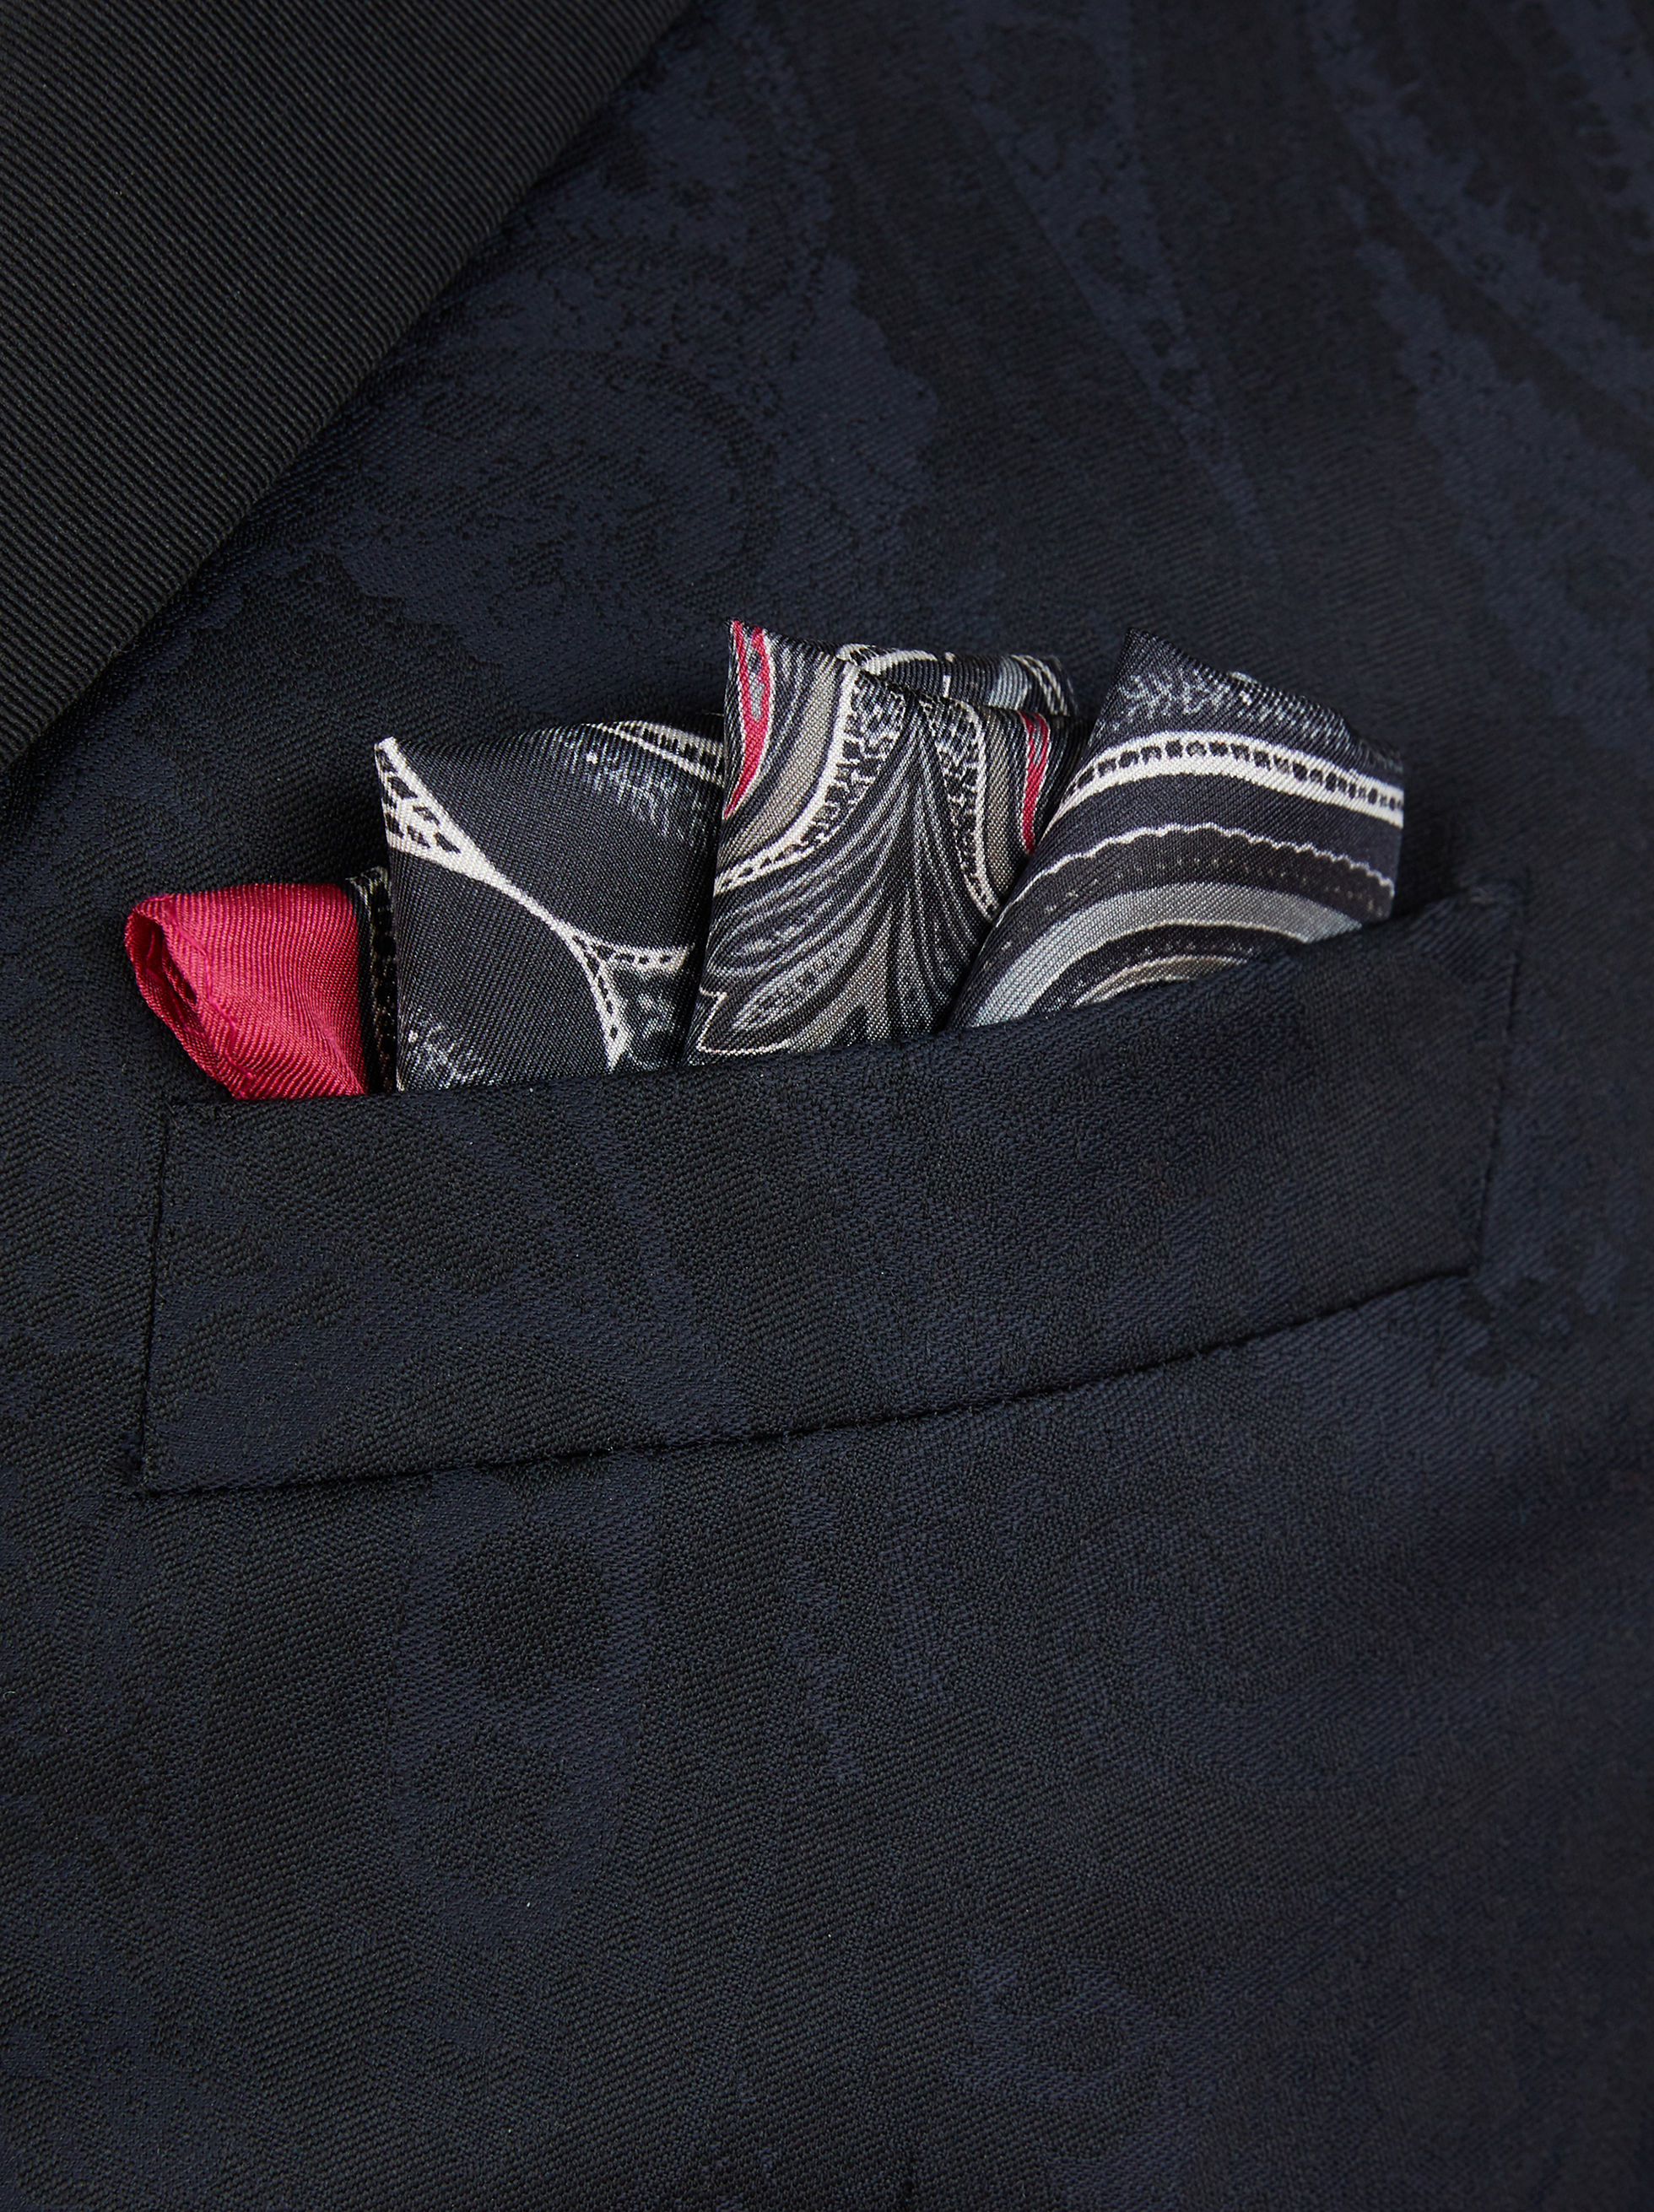 POCKET SQUARE WITH PAISLEY PRINT